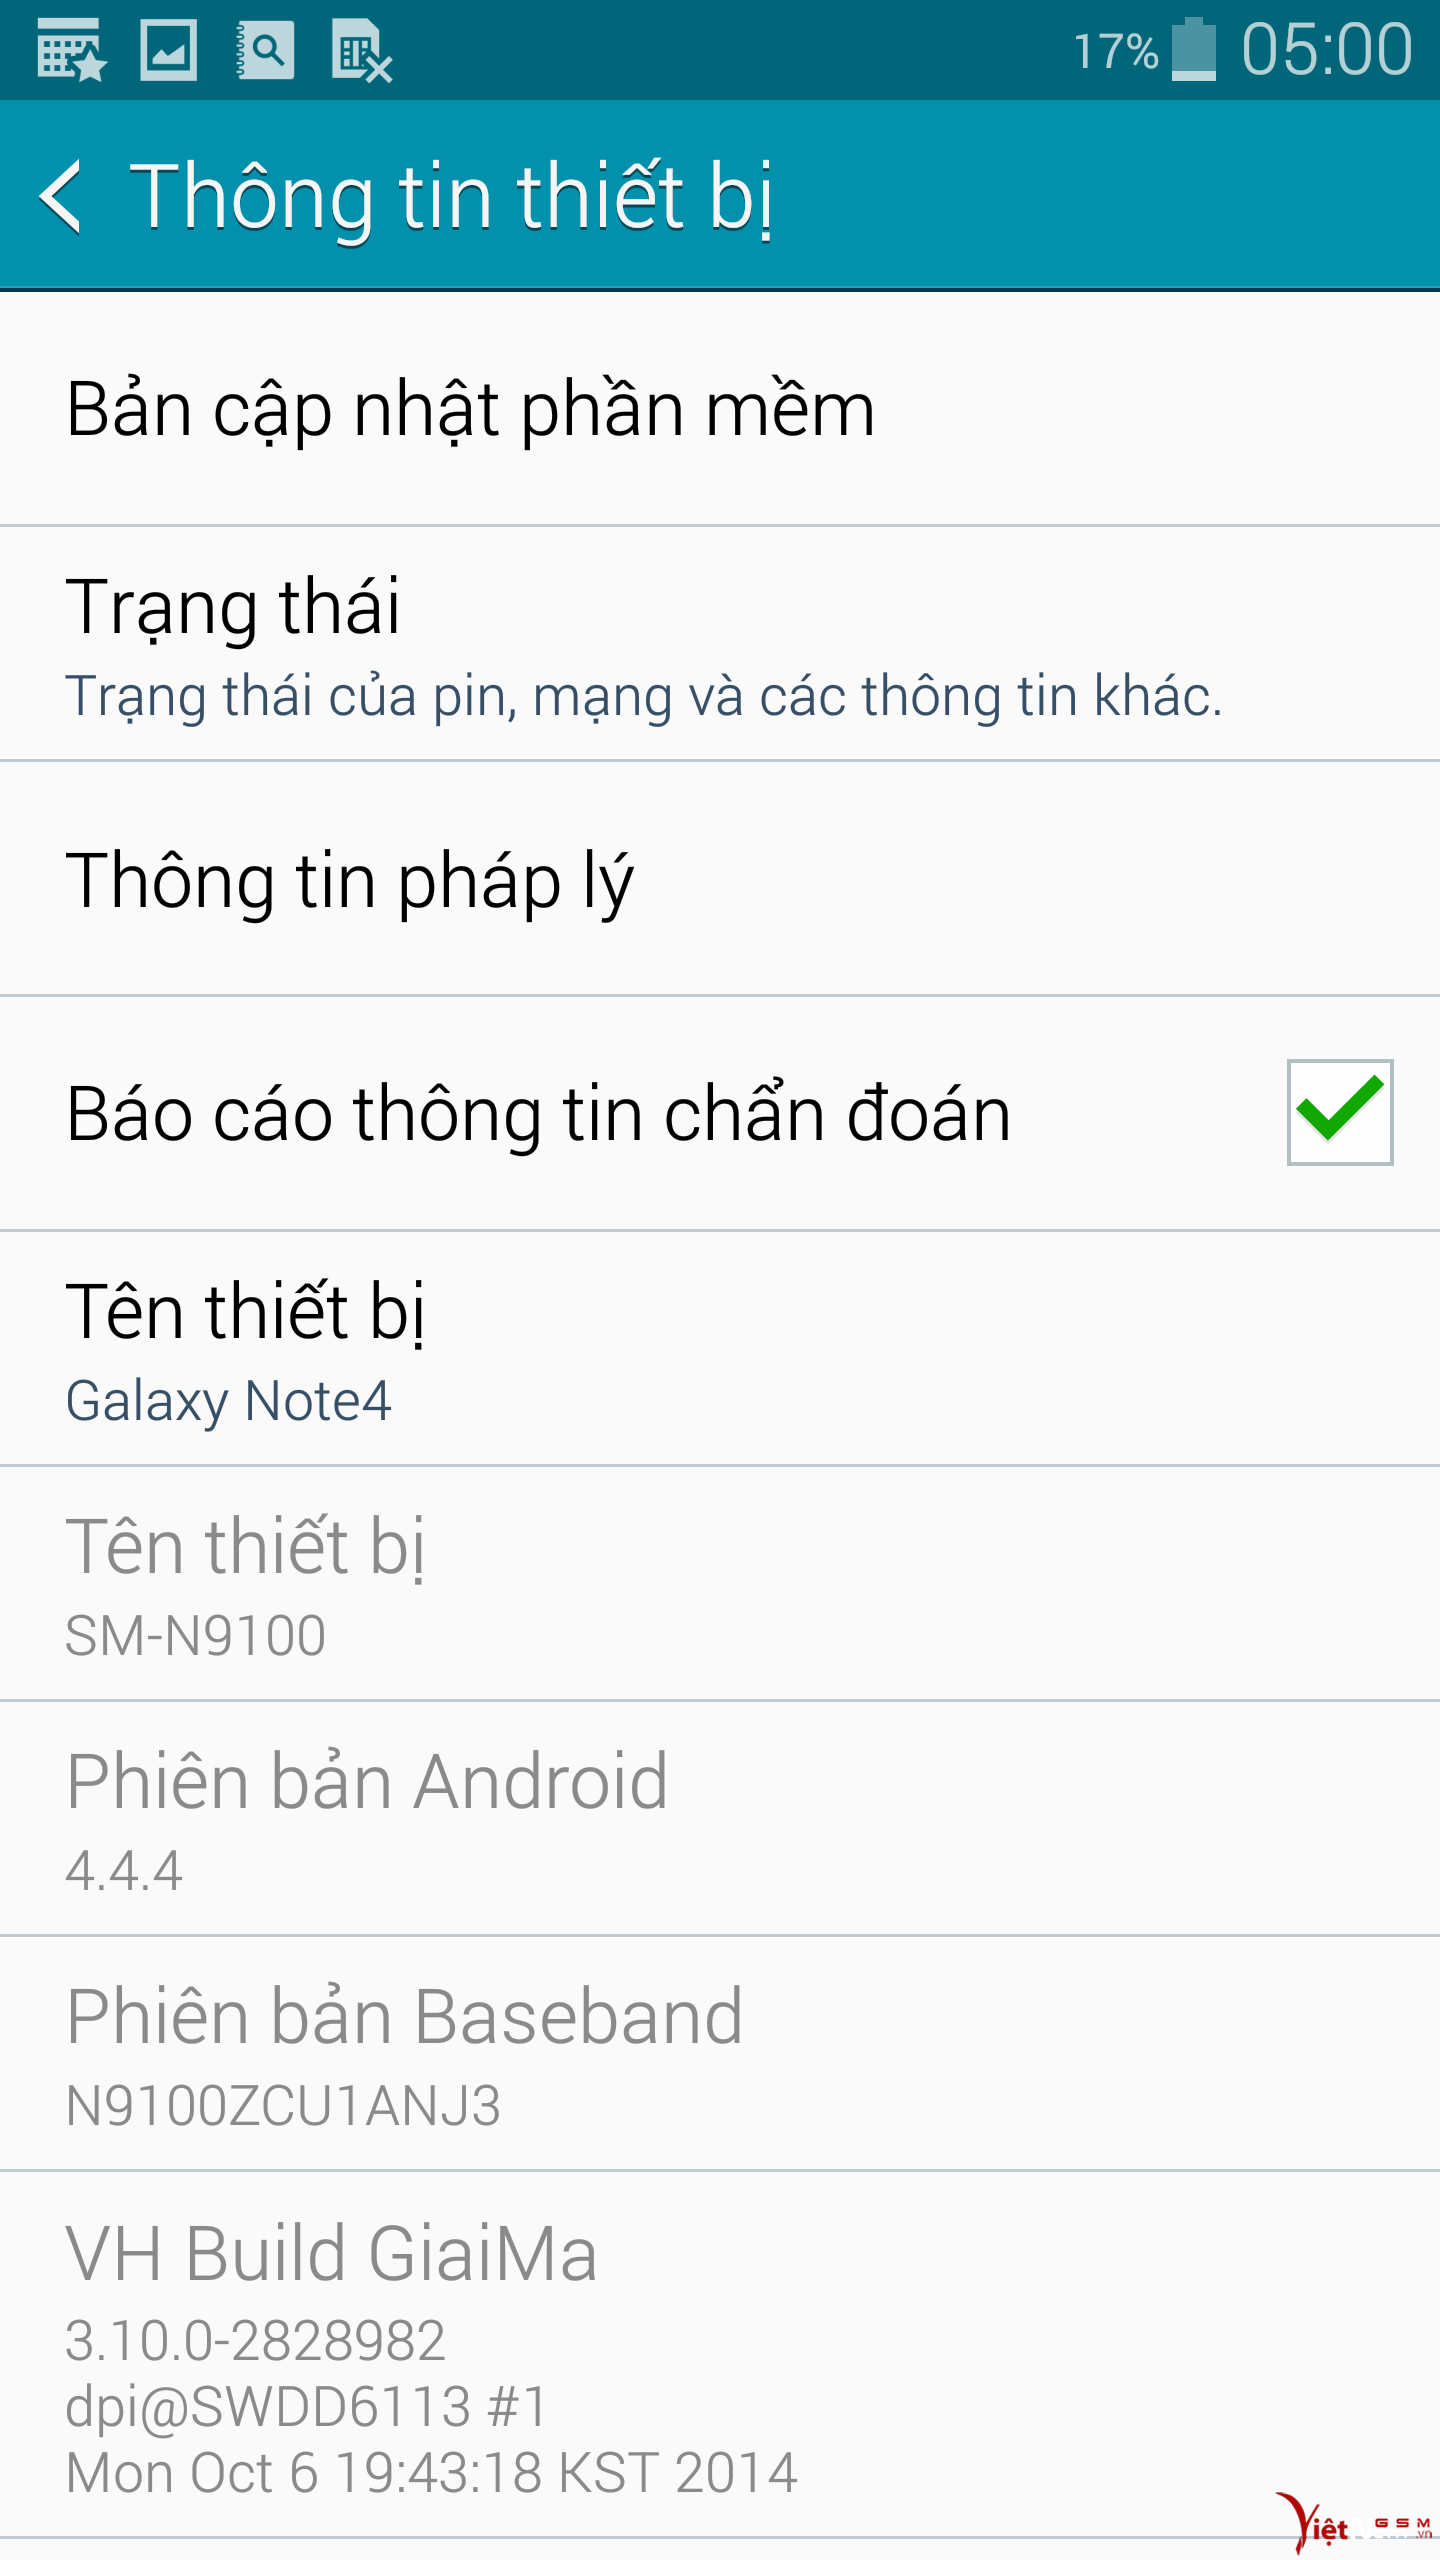 Screenshot_2014-12-01-05-00-37.png